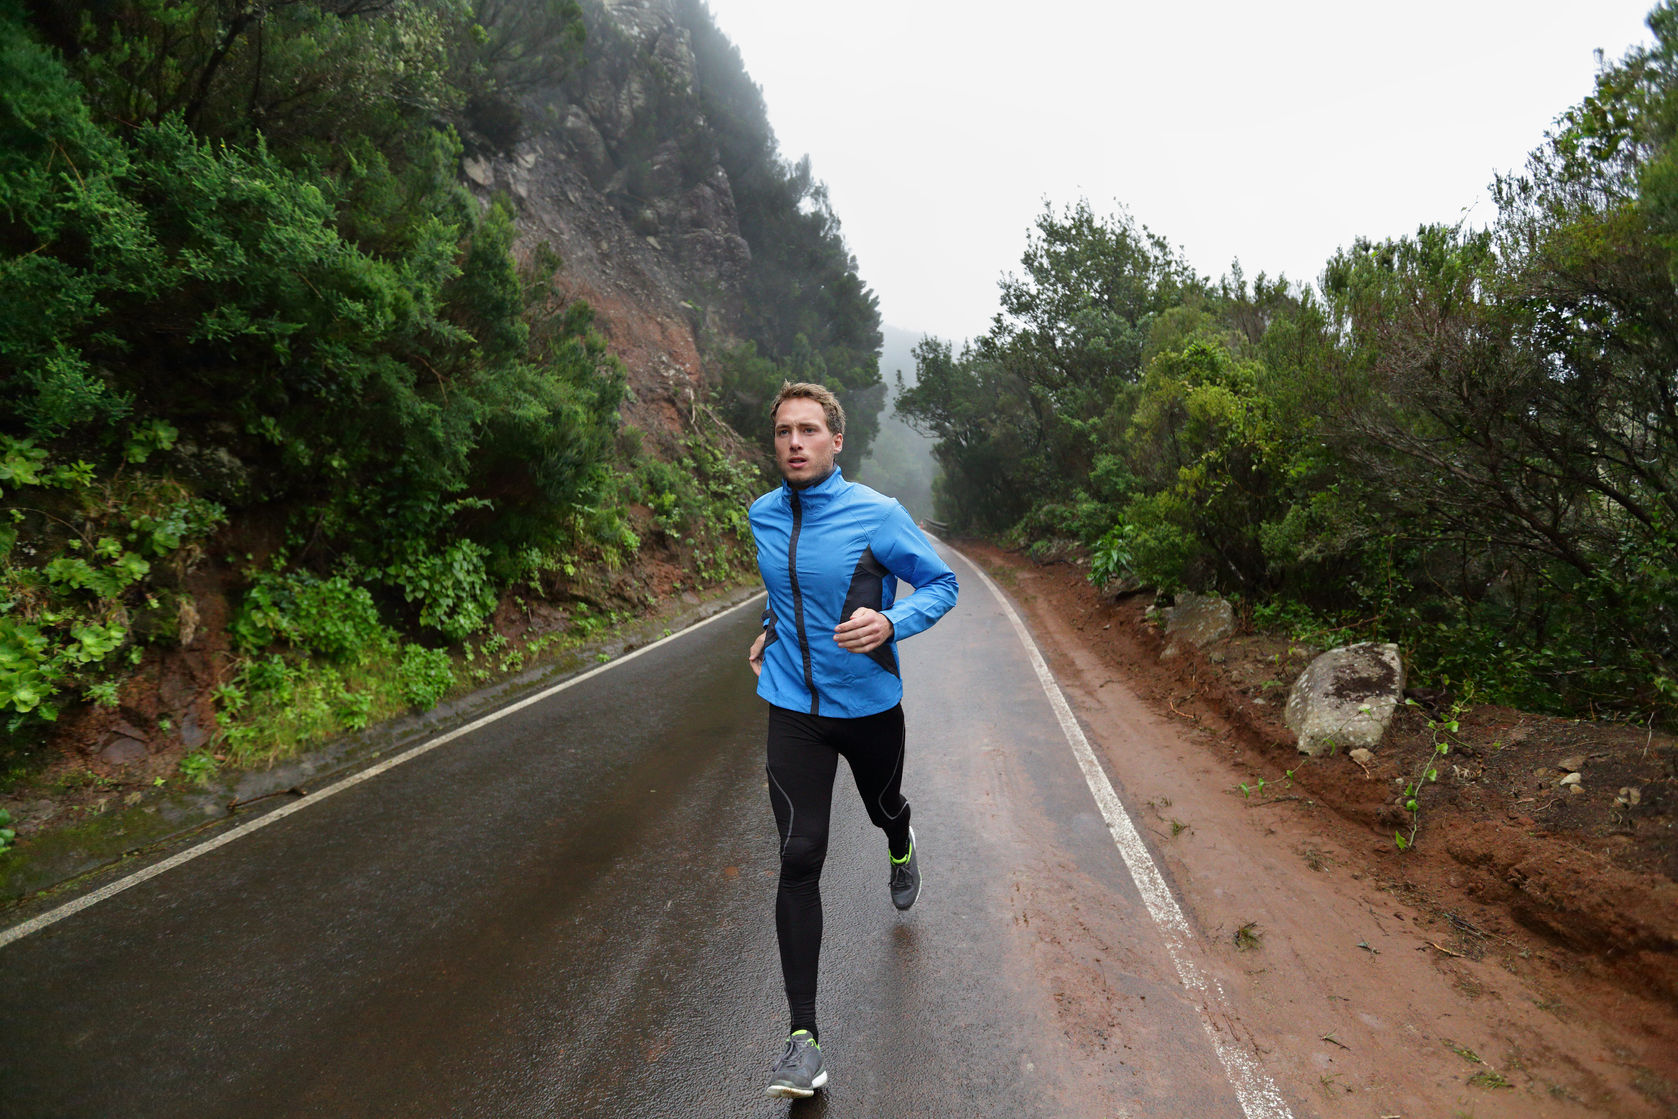 Male runner jogging and running on road in rain in jacket and long tights